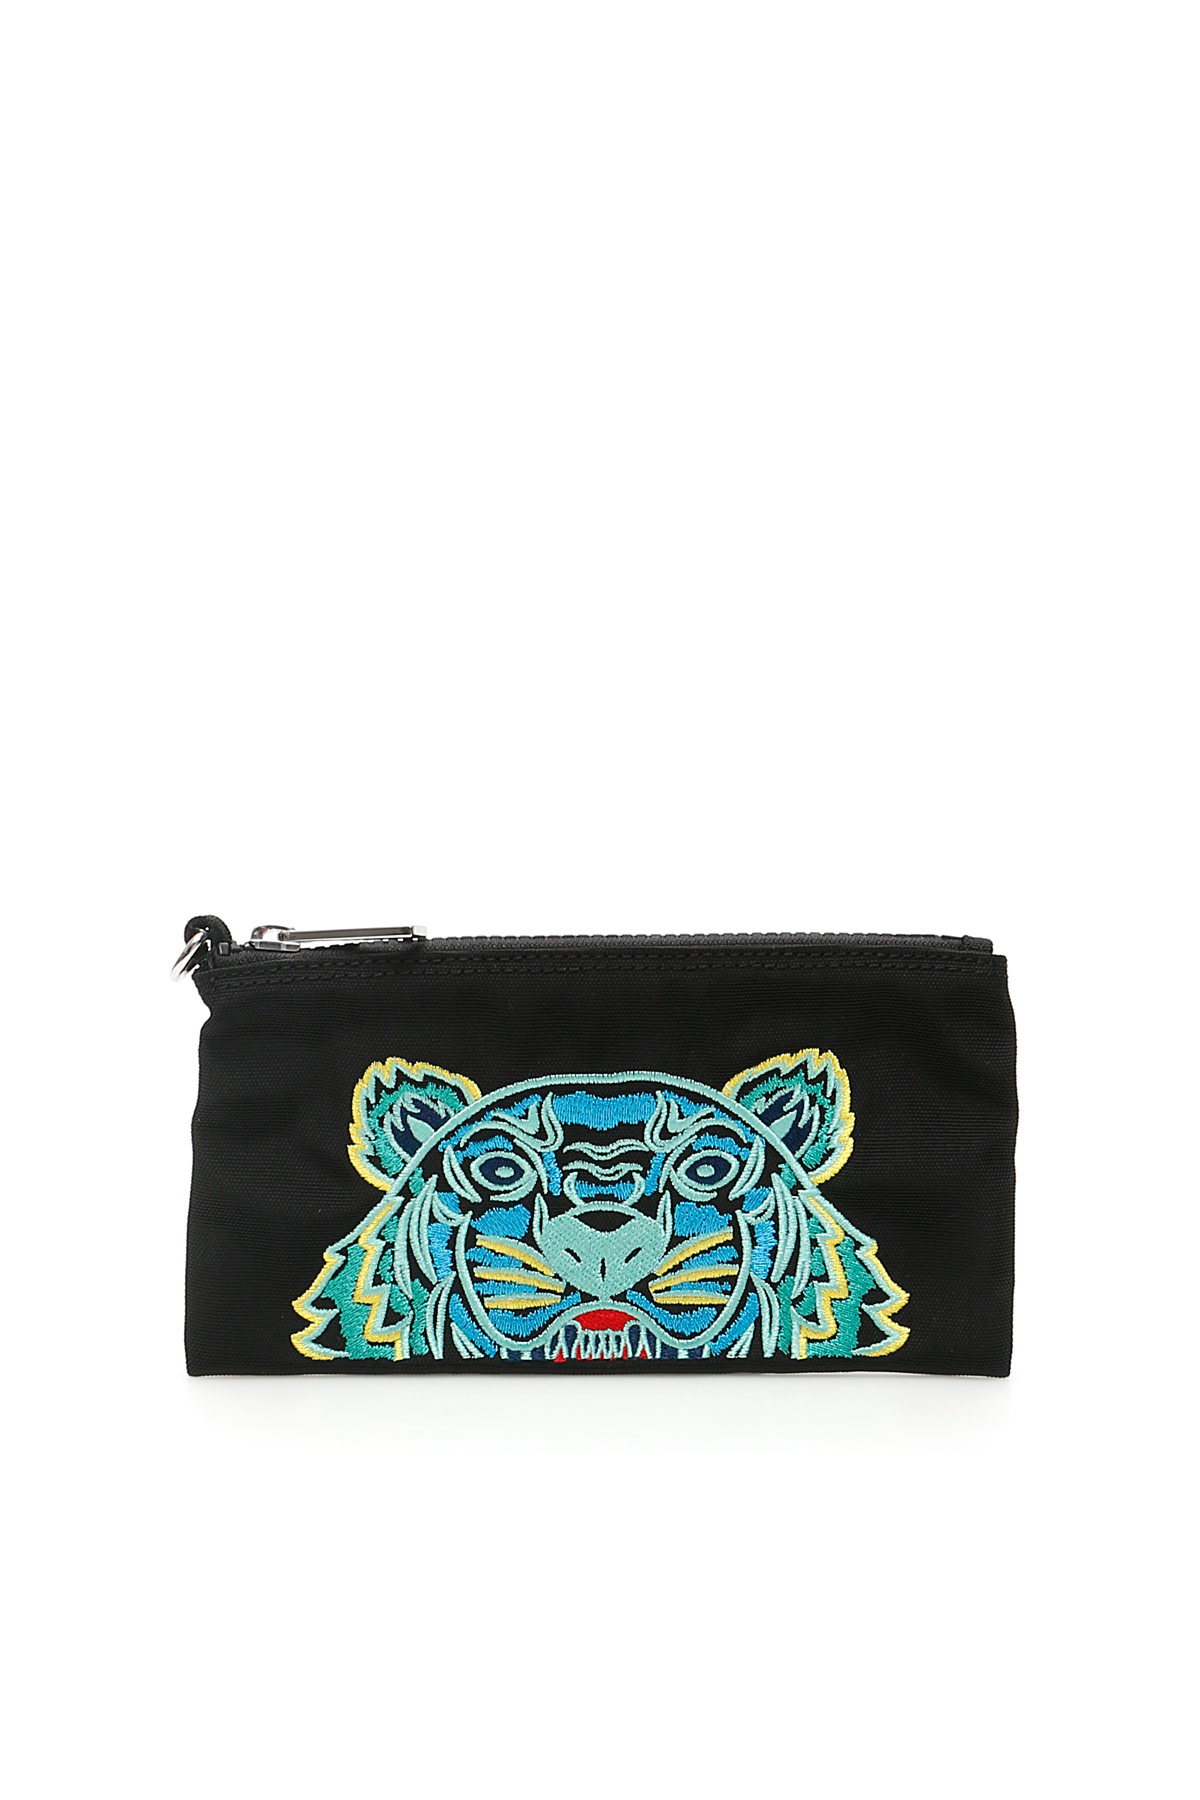 Small leather goods KENZO фото